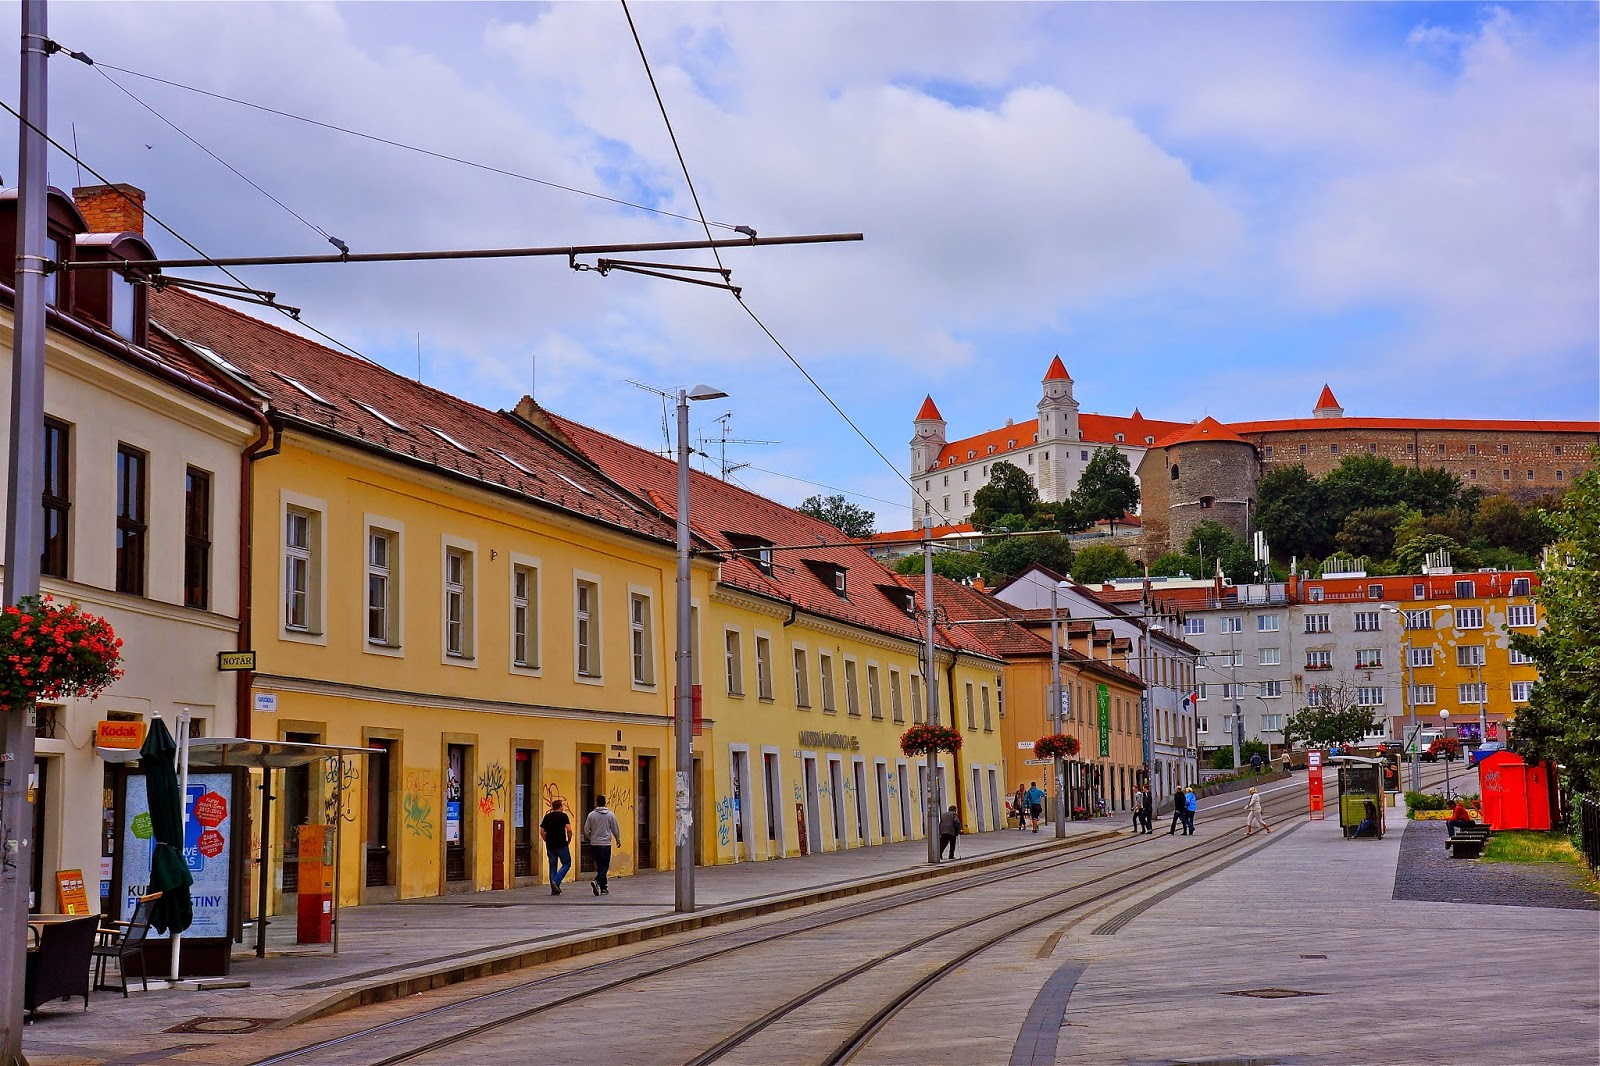 Picture from Bratislava, Slovakia.